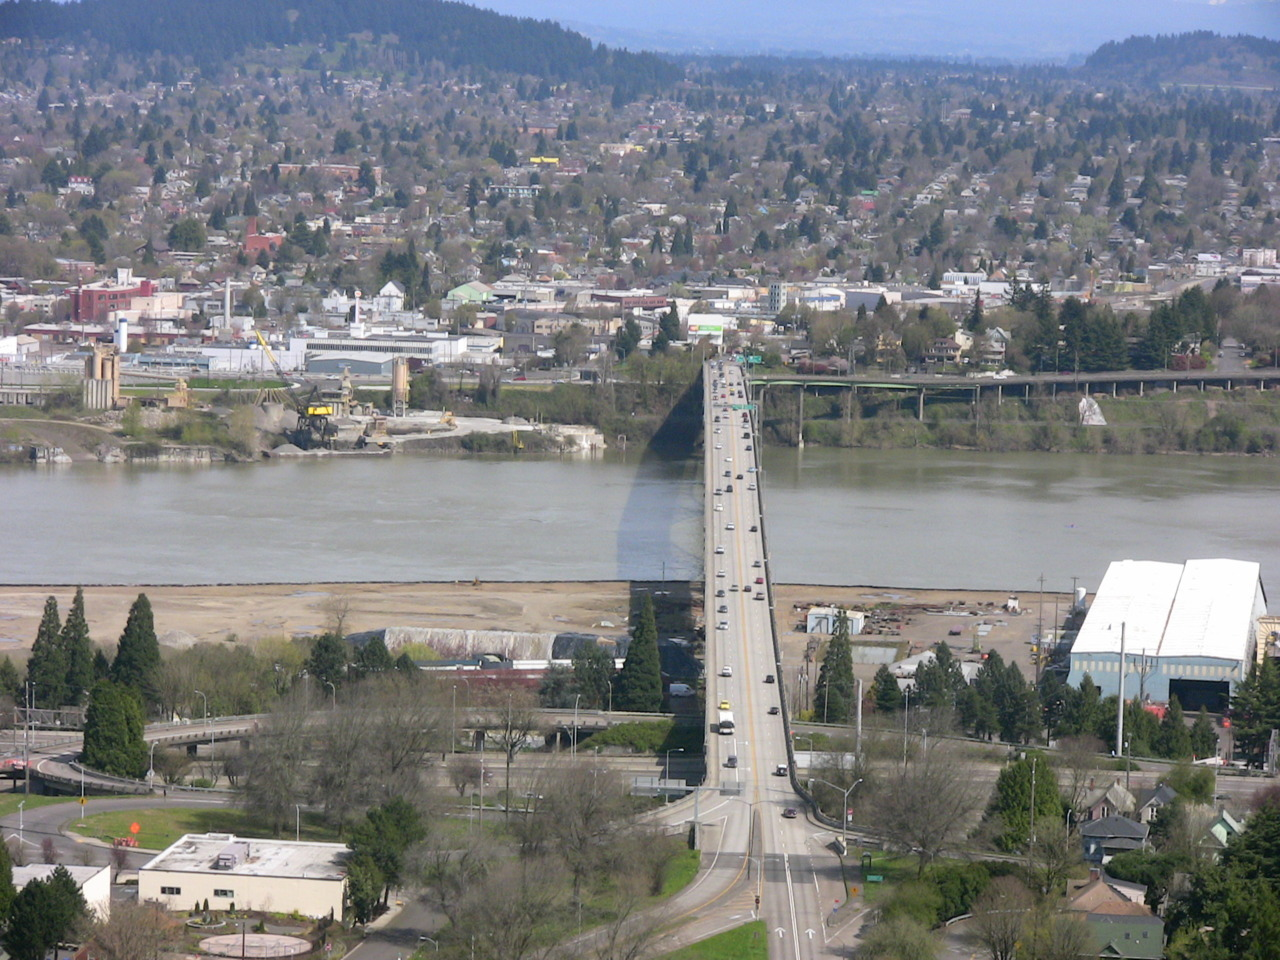 View directly across the Ross Island Bridge from the West Hills.